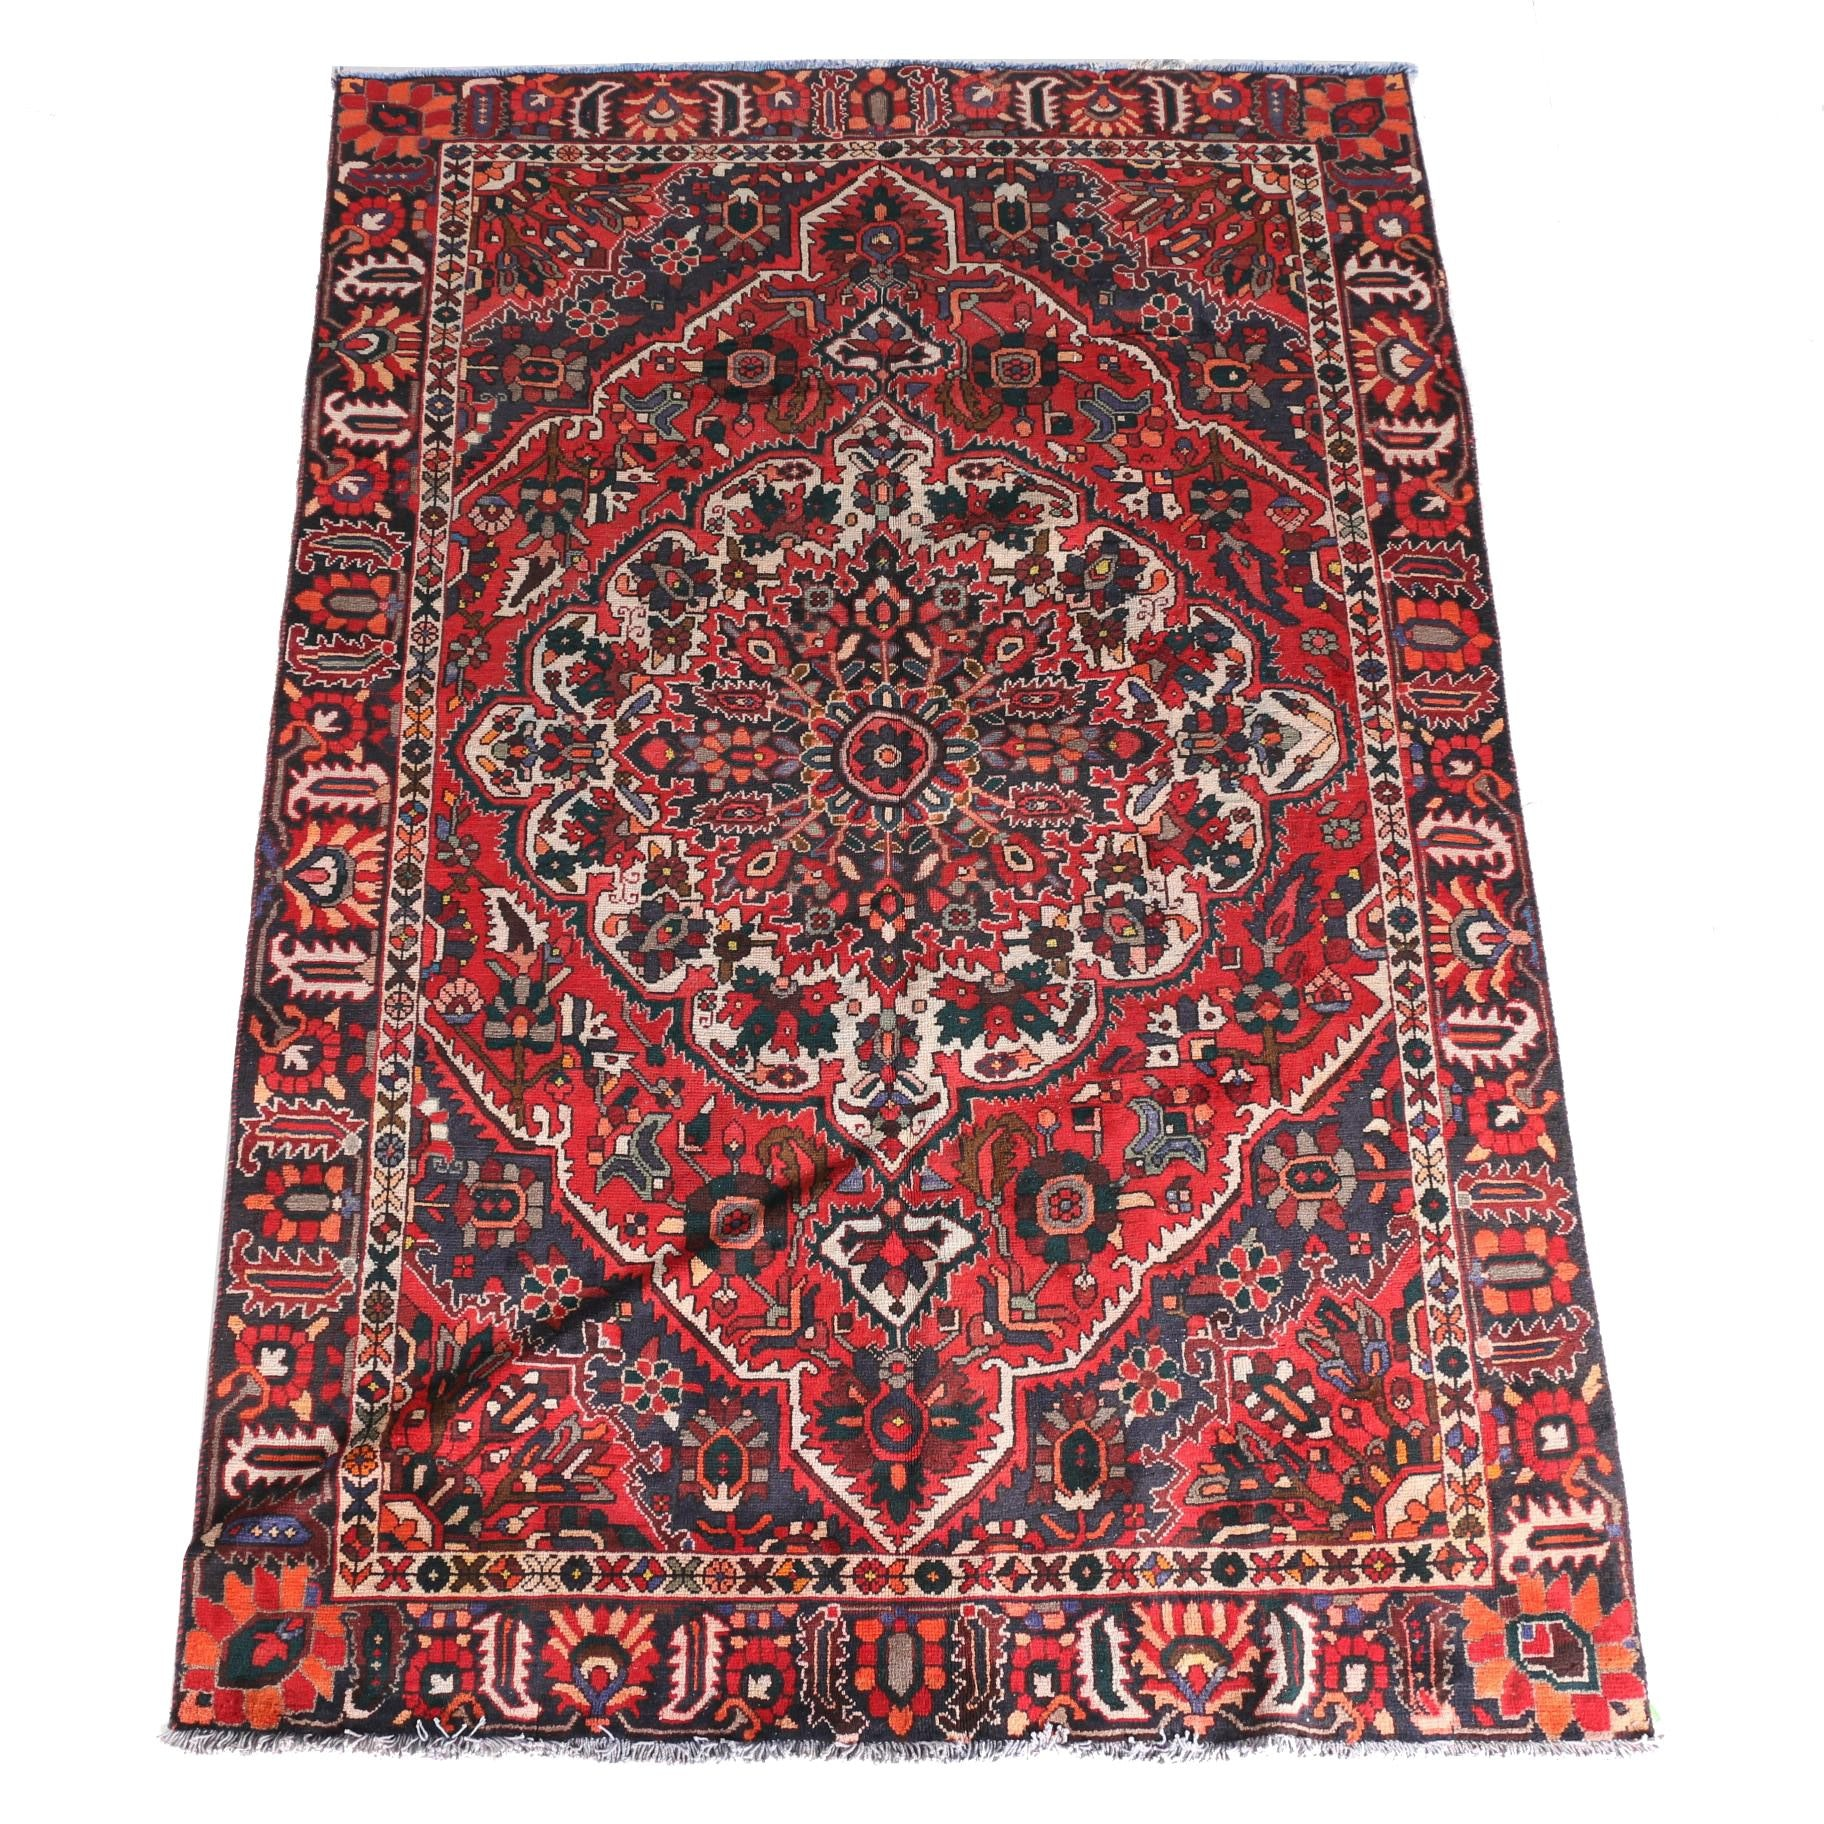 Hand-Knotted Persian Kerman Style Area Rug